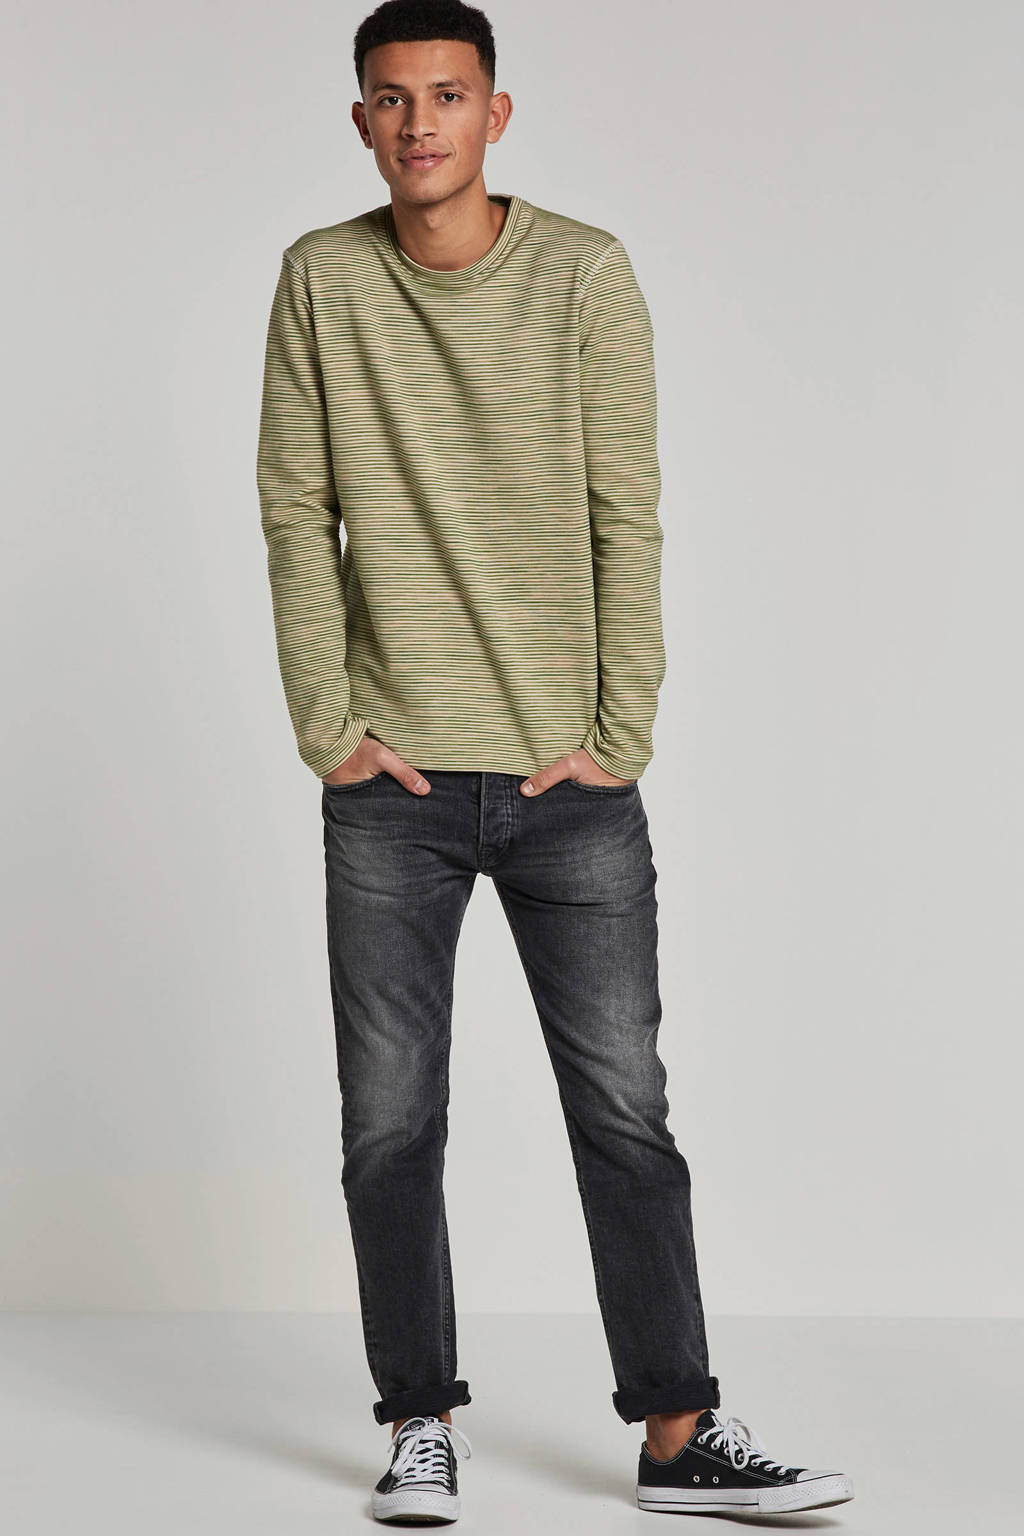 SELECTED HOMME trui, Groen/beige